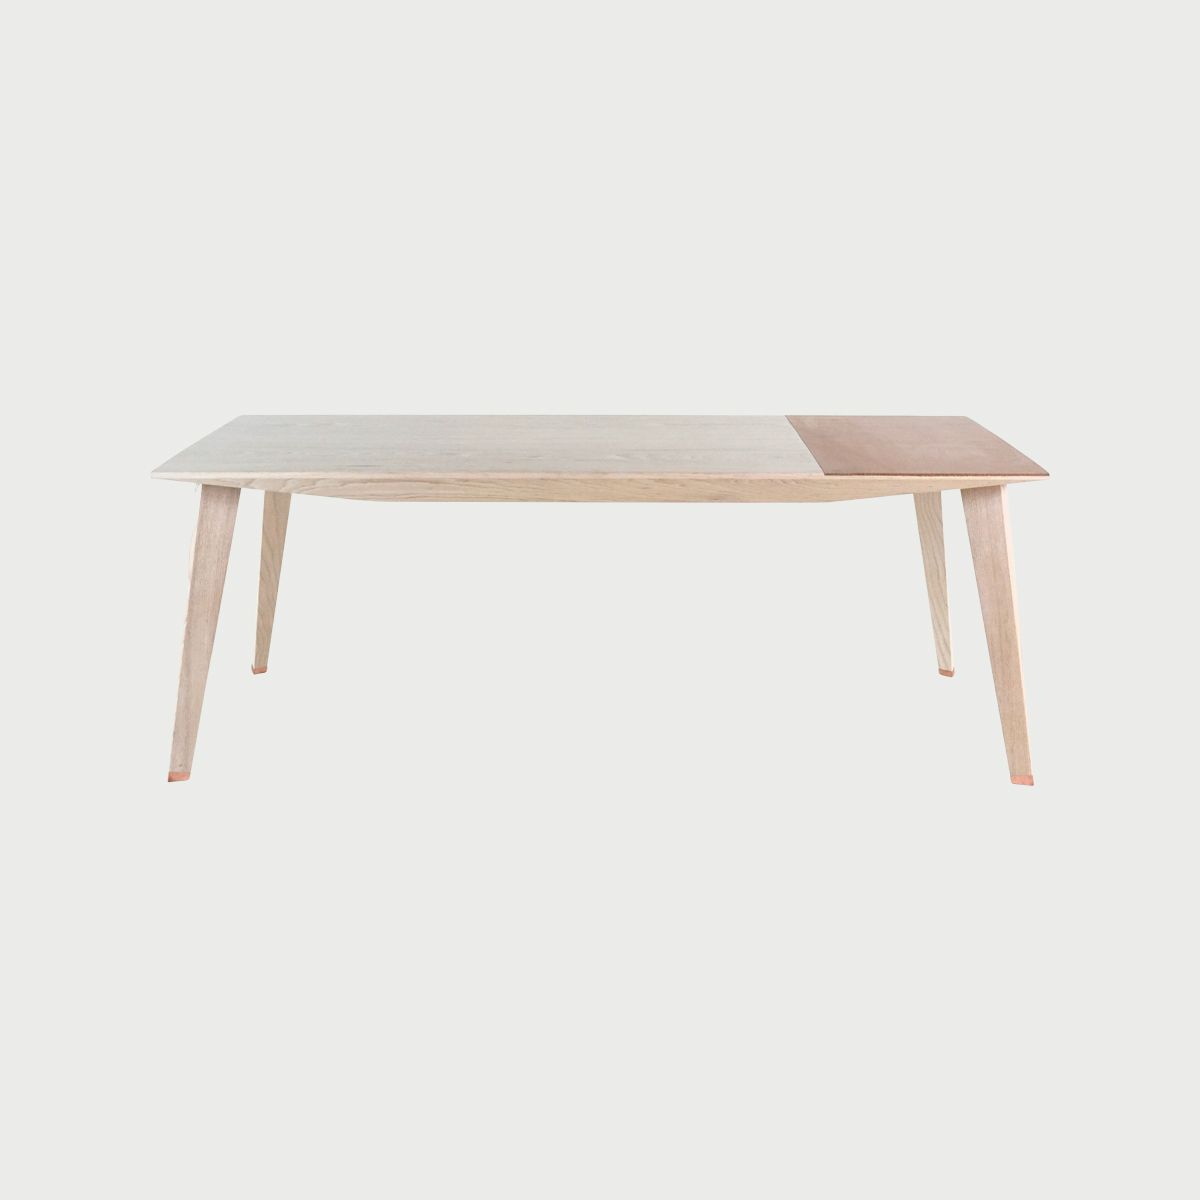 Hatch Coffee Table Coffee Table Table Furniture [ 1200 x 1200 Pixel ]